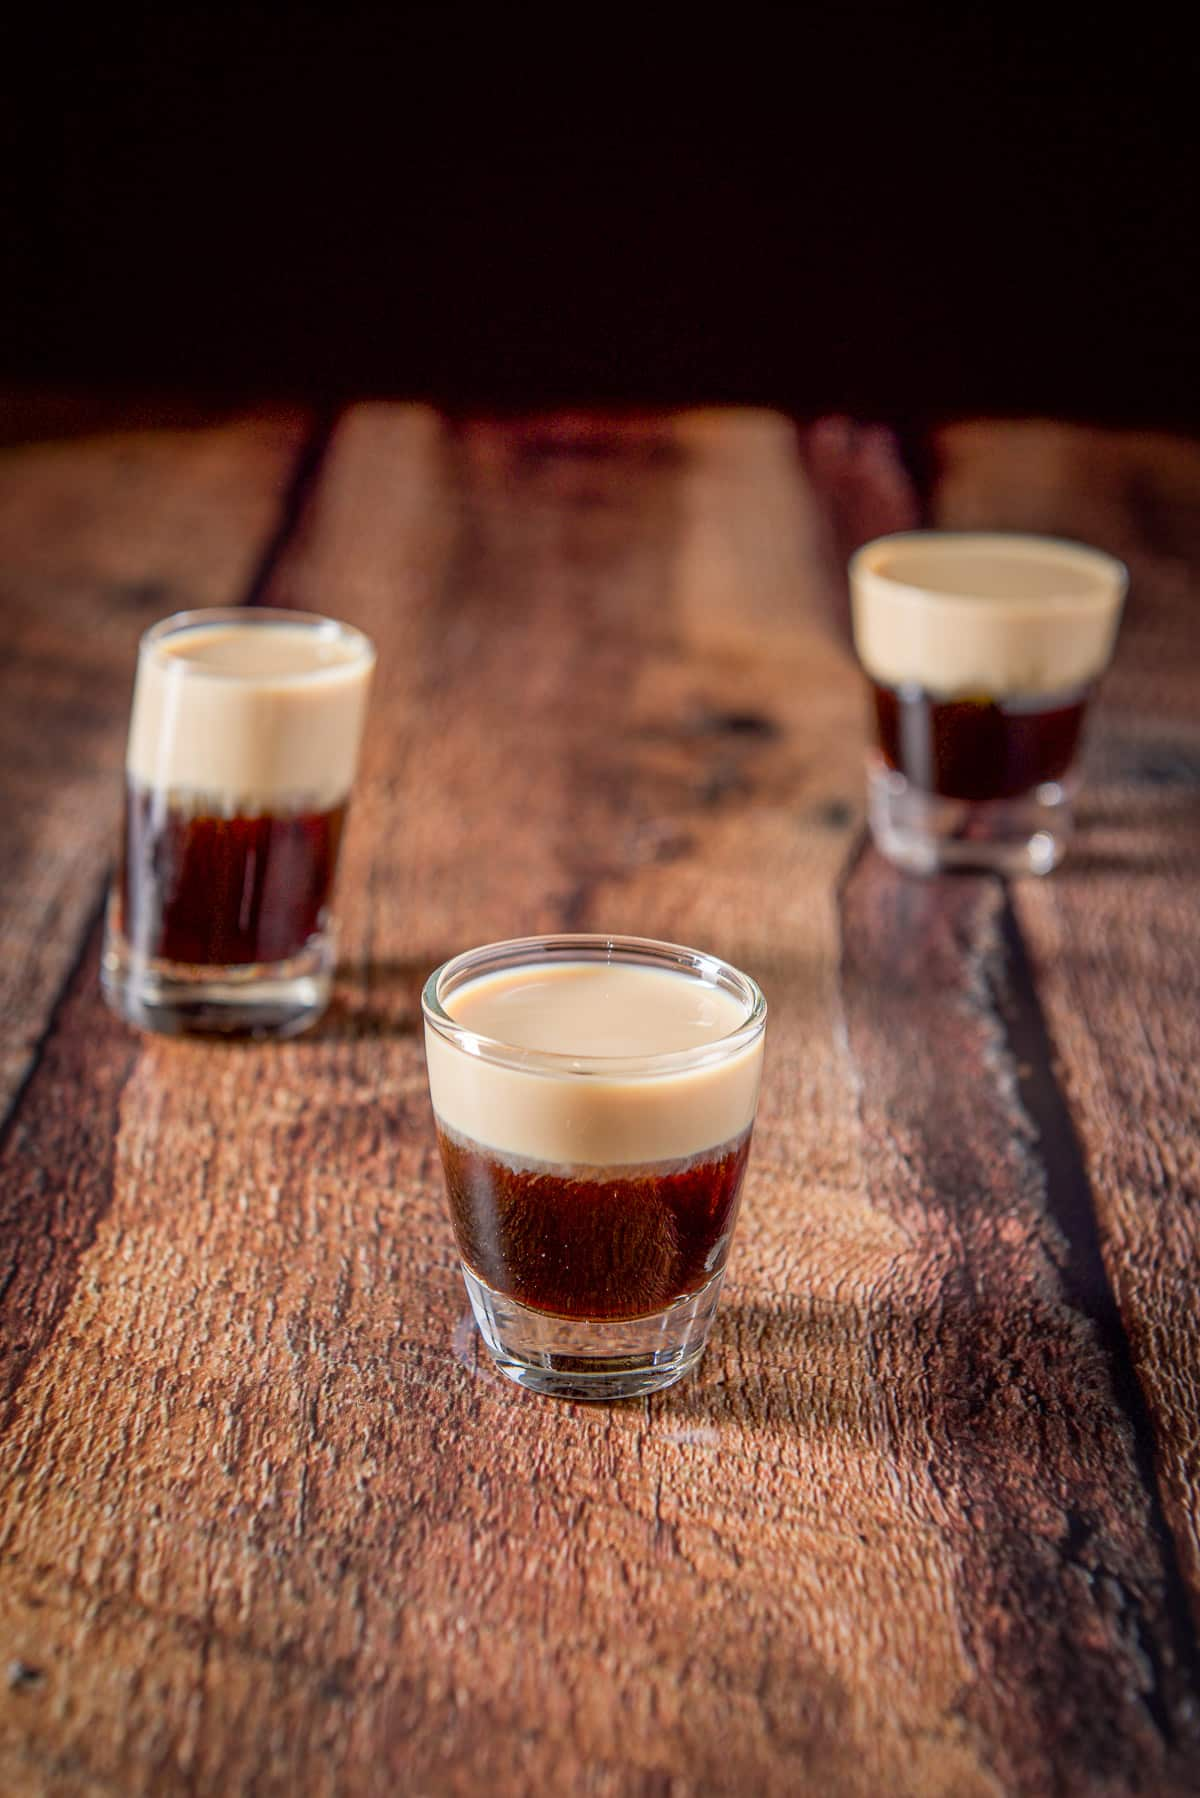 Three glasses filled with a layered shot all on a wooden table